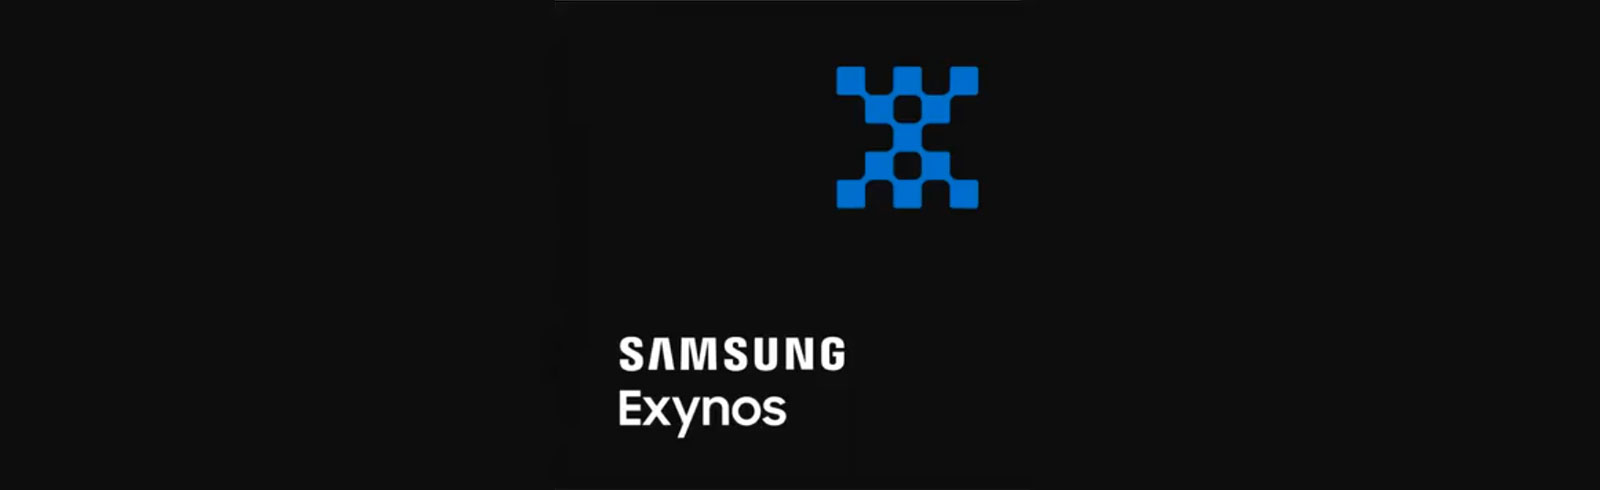 Samsung will announce the Exynos 9825 chipset on August 7th, will debut on the Galaxy Note 10 series